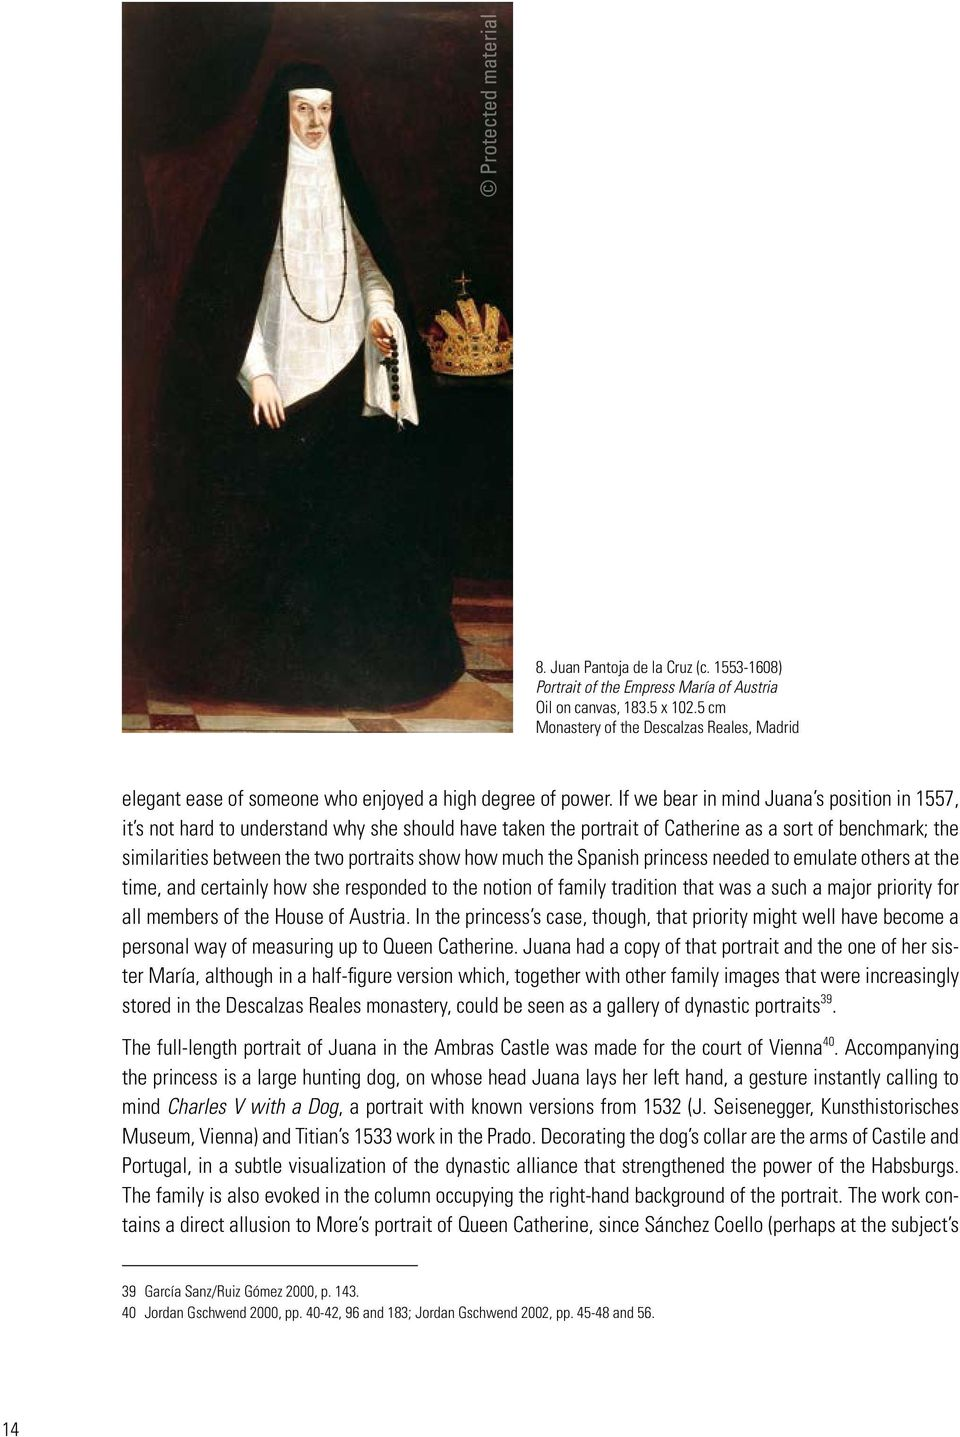 If we bear in mind Juana s position in 1557, it s not hard to understand why she should have taken the portrait of Catherine as a sort of benchmark; the similarities between the two portraits show